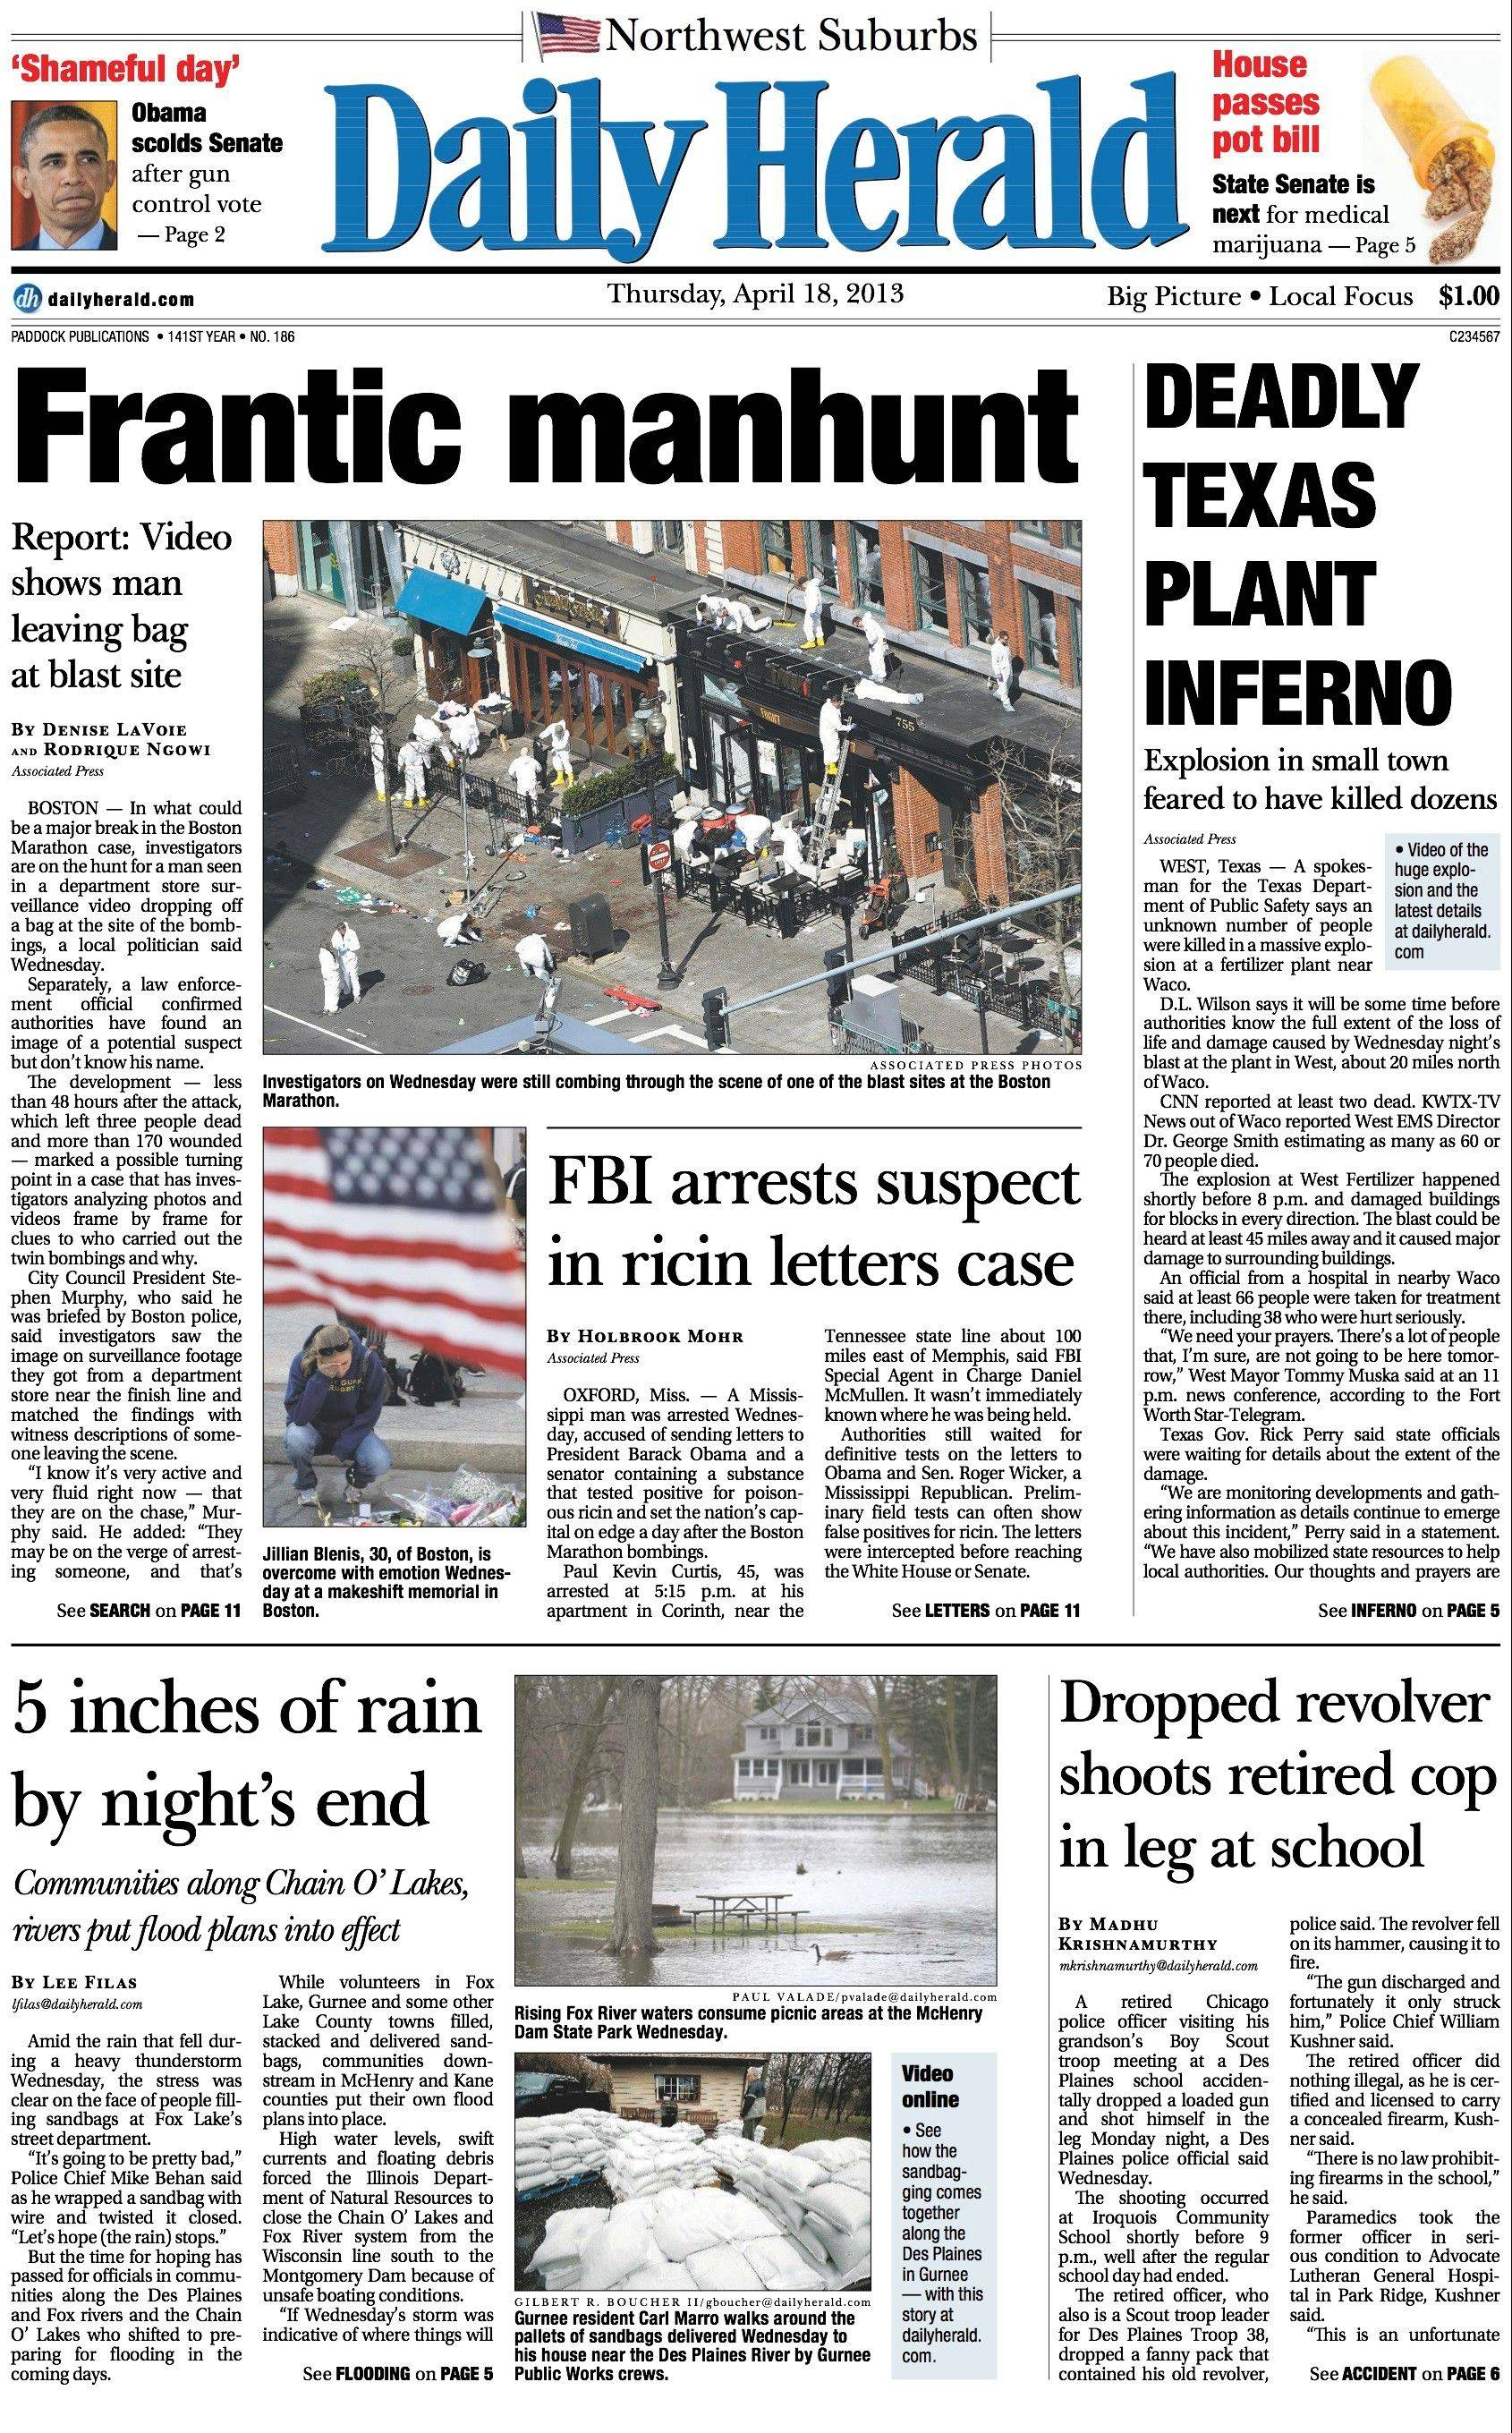 April 18: As police and the FBI chased down two suspects in the Boston Marathon bombing, a Texas factory exploded, with dozens feared killed. Meanwhile, spring rains were drenching the suburbs. This all in one day in a busy news week.